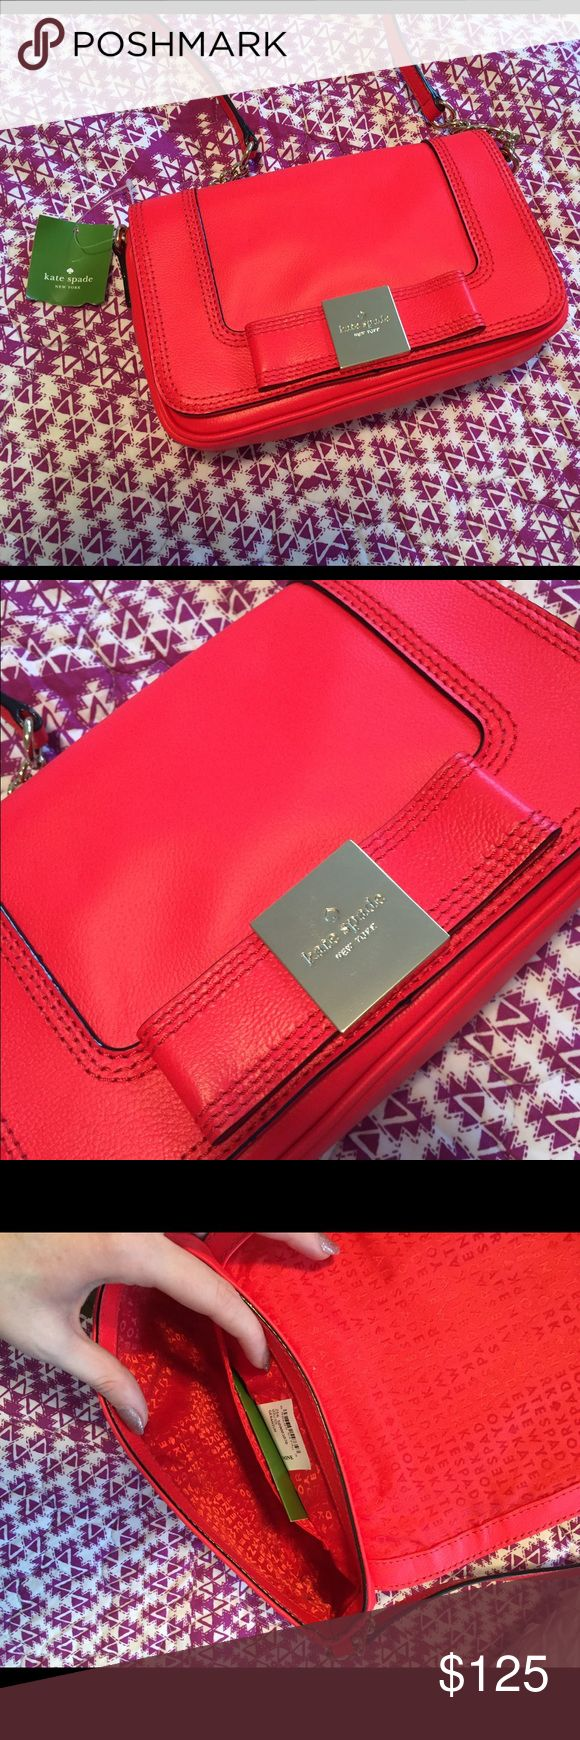 Kate spade cross-body bag NEW WITH TAGS!  Katie spade cross body bag with bow detail.  Bright geranium color. kate spade Bags Crossbody Bags